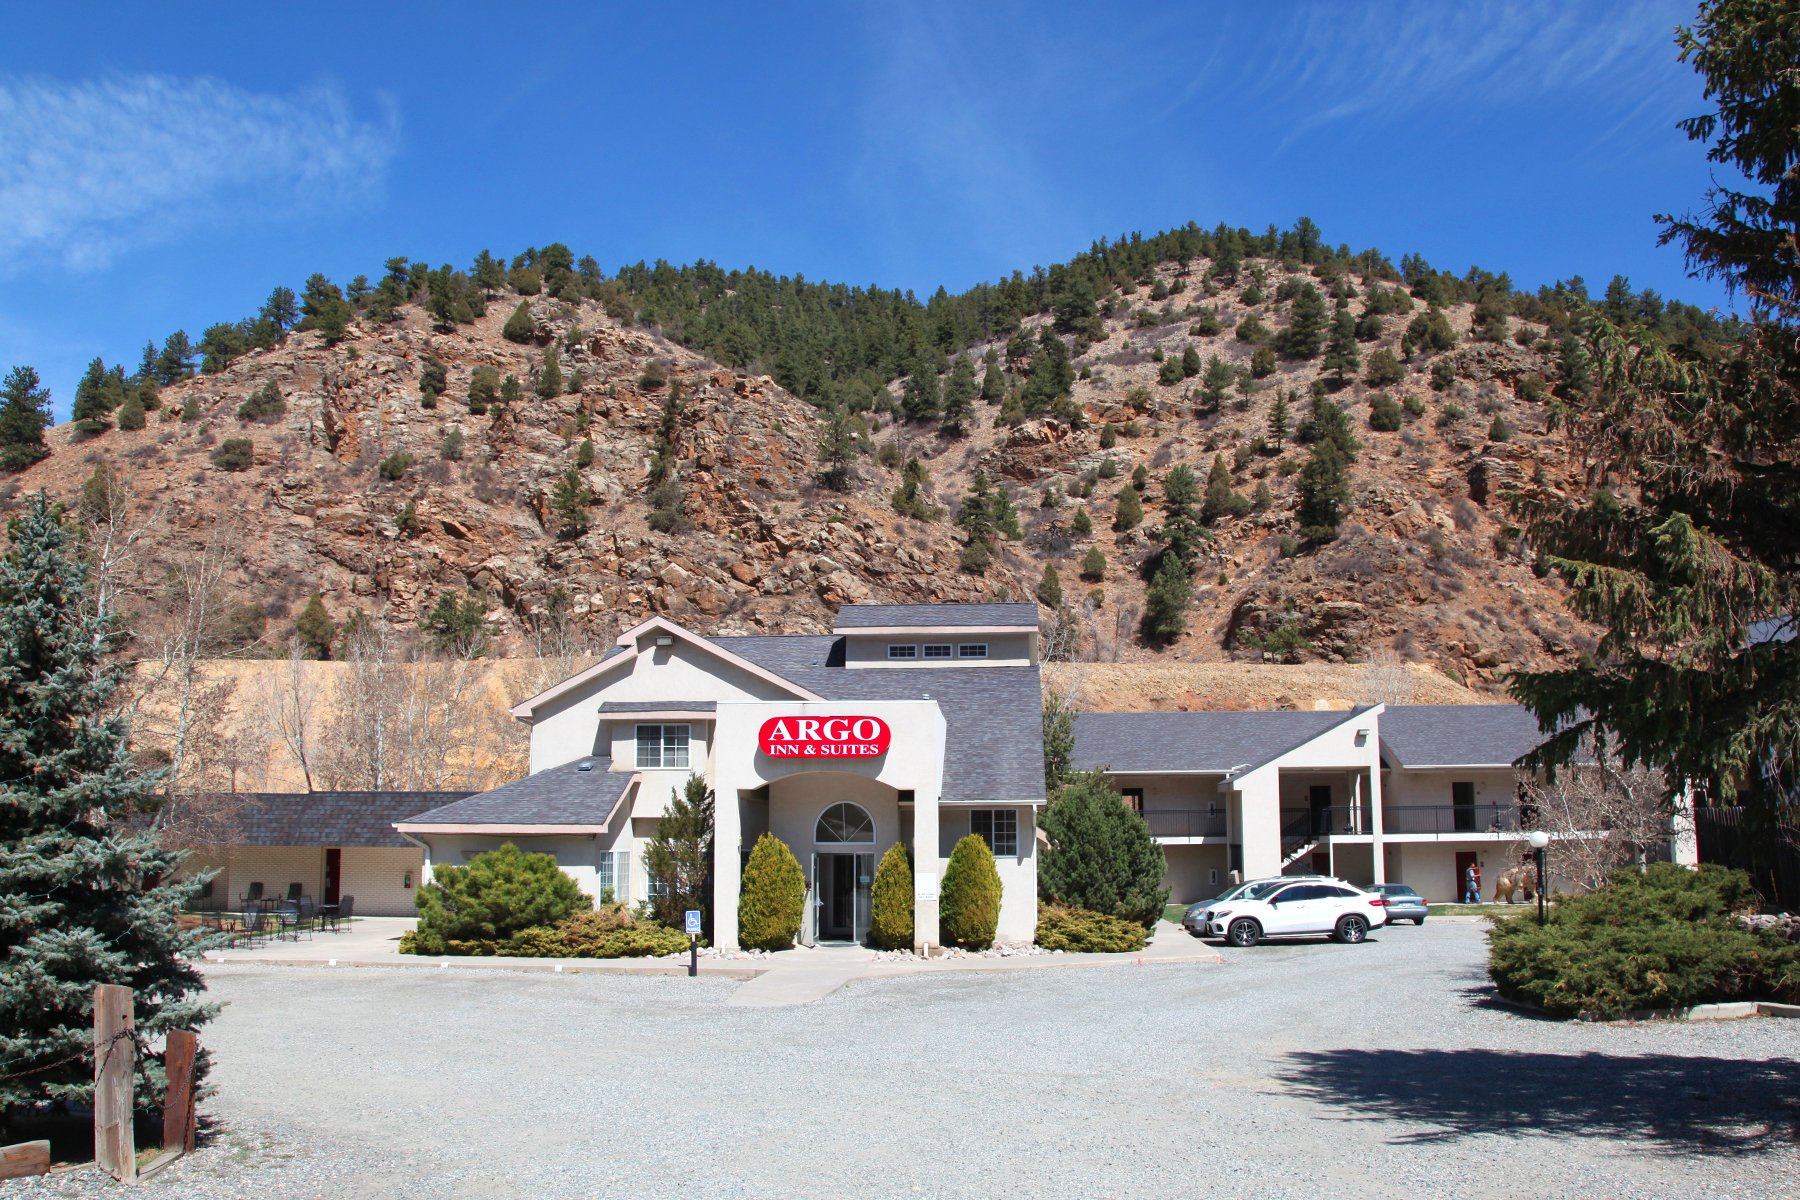 Argo Inn and Suites